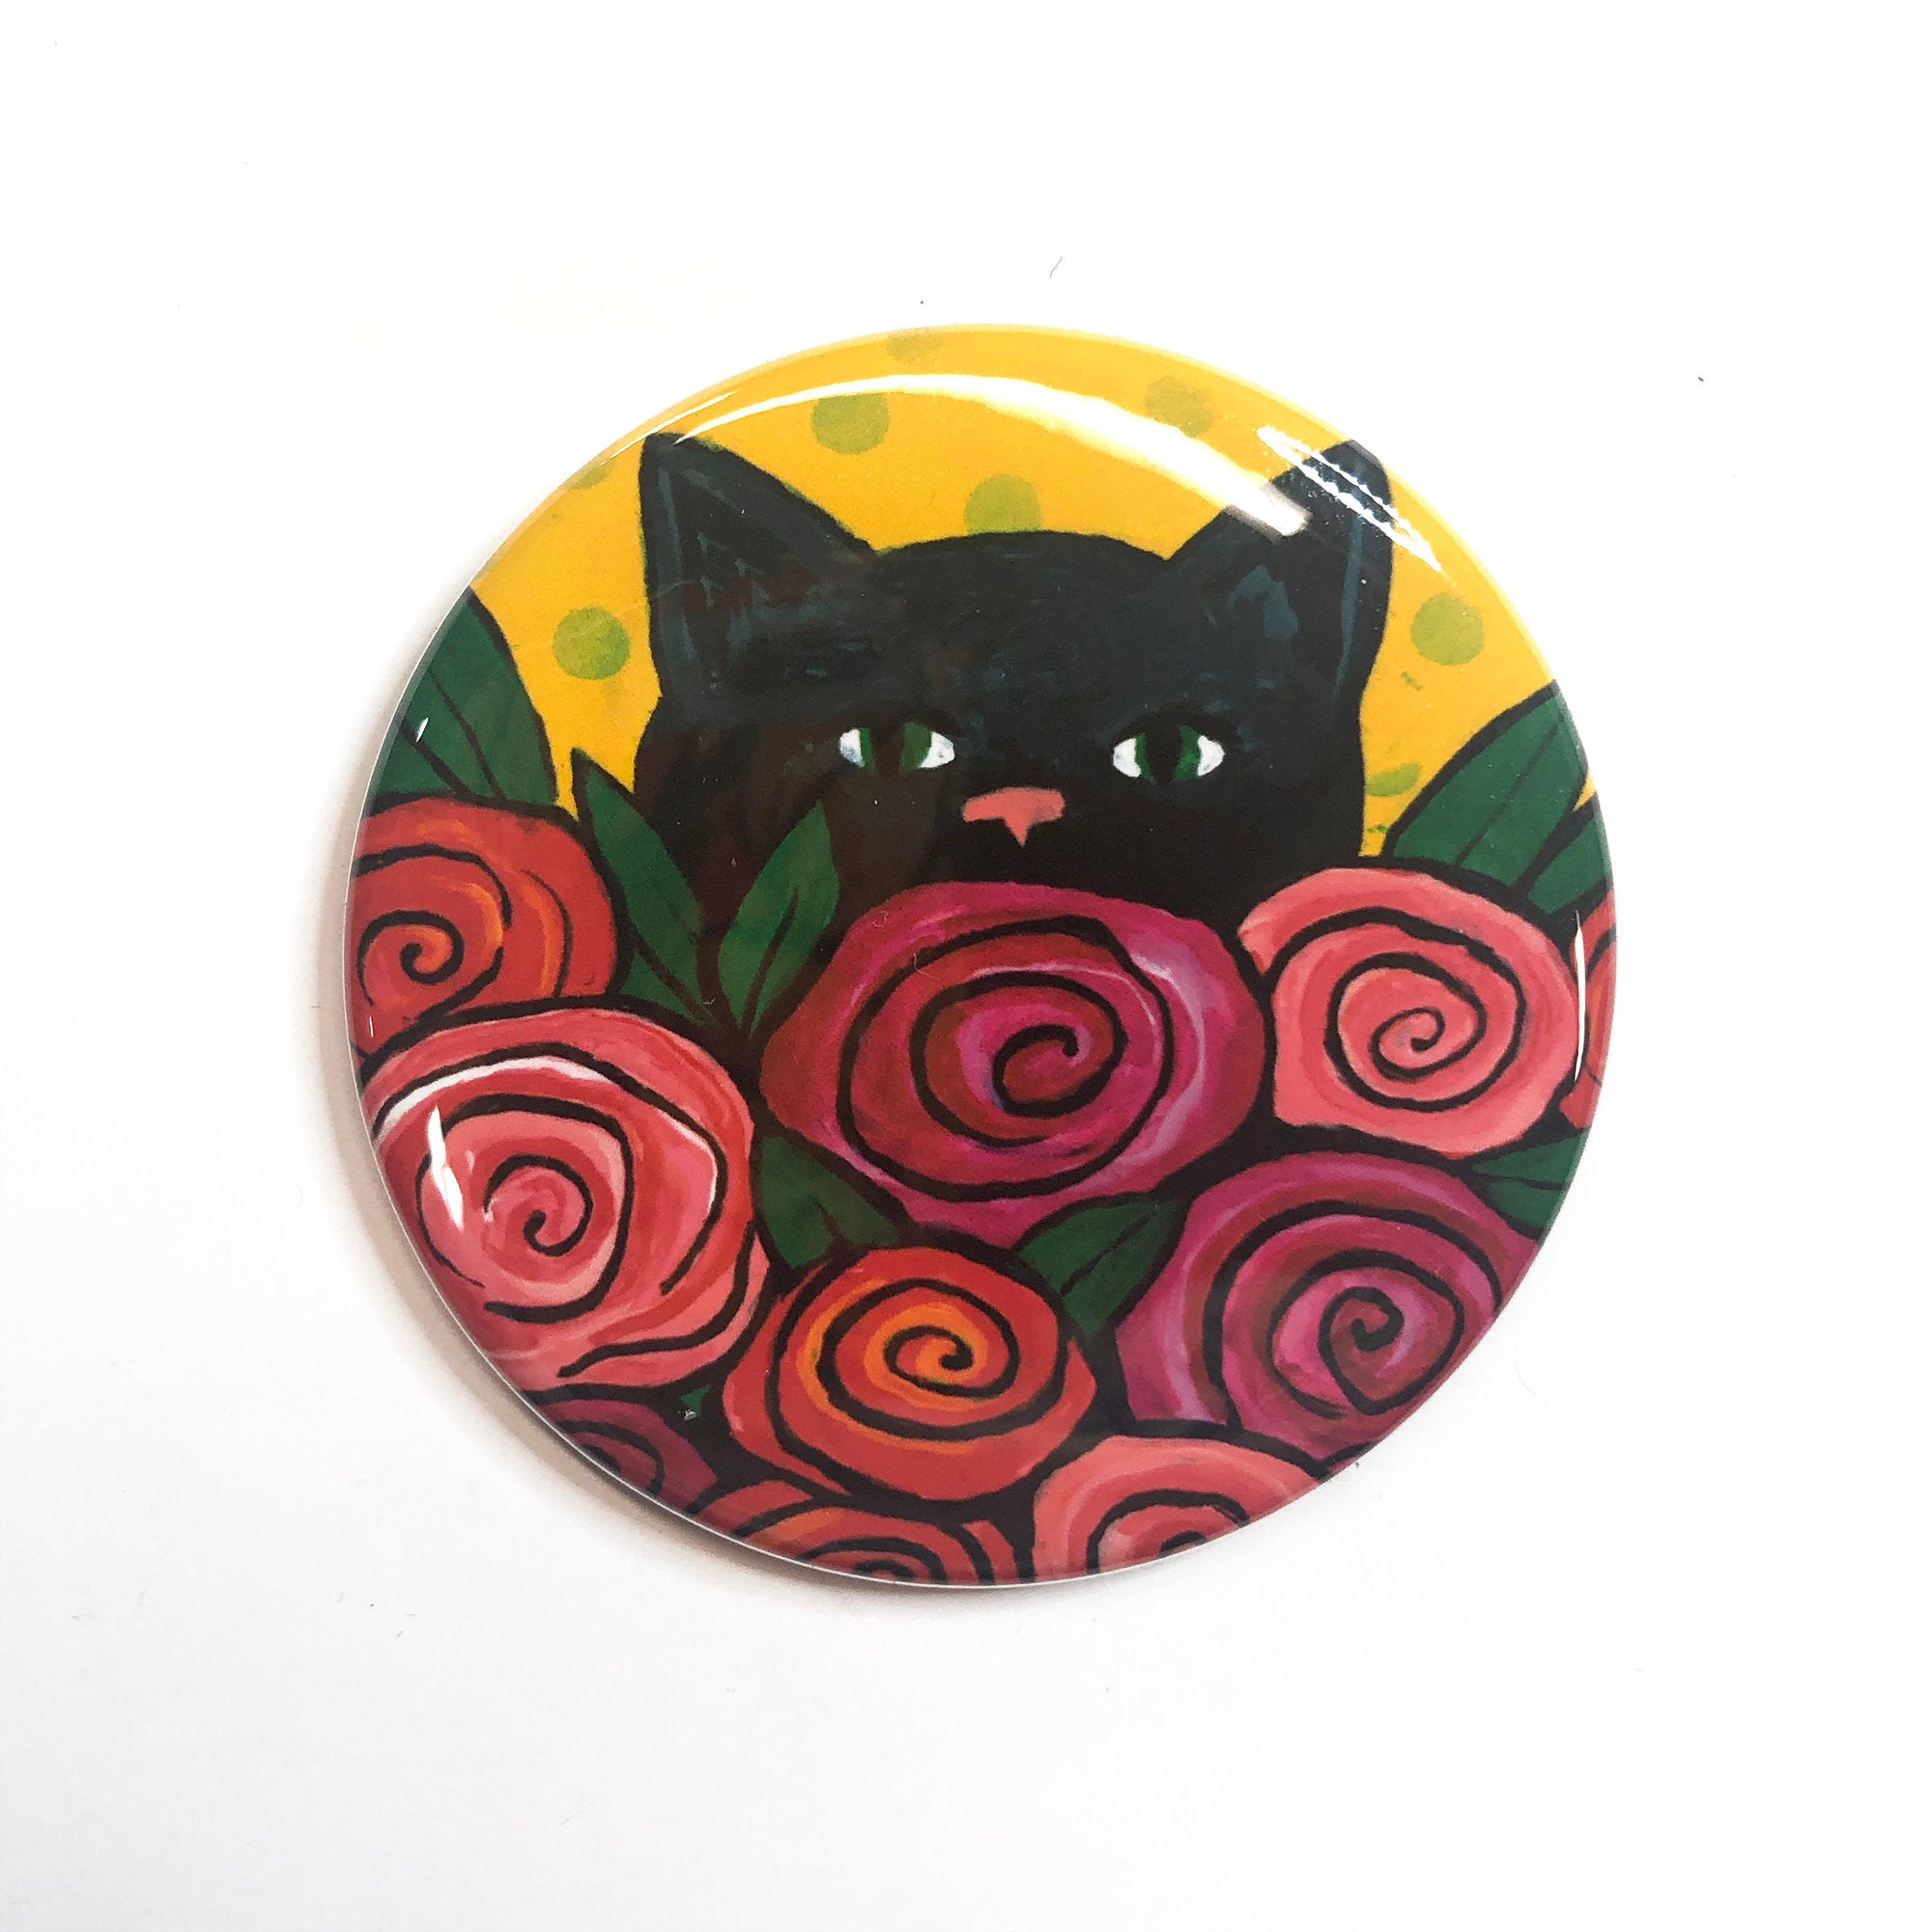 Black Cat Magnet, Pin Back Button, or Pocket Mirror - Rose Kitty - Cat Lover Gift